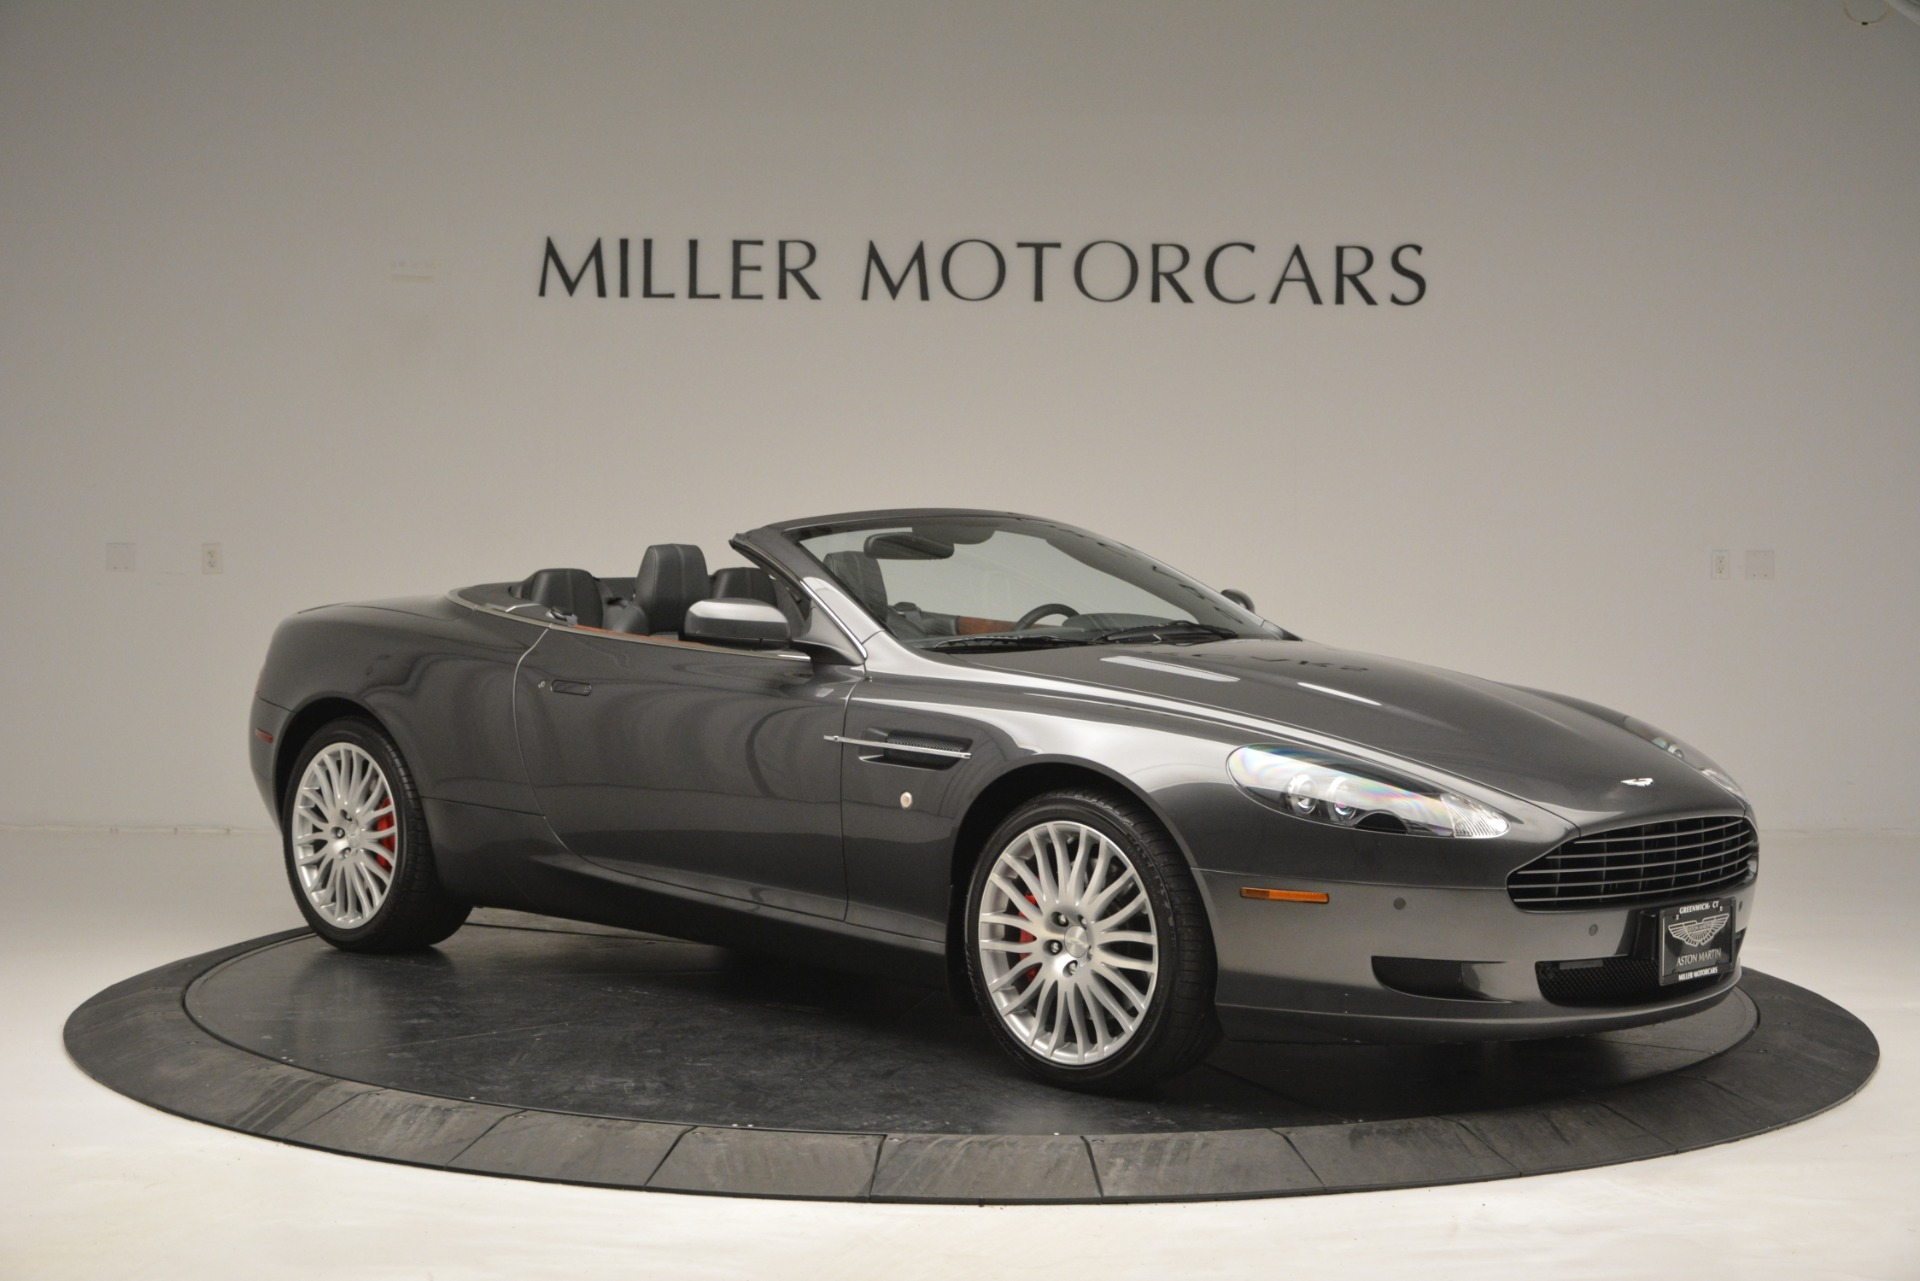 Used 2009 Aston Martin DB9 Convertible For Sale In Greenwich, CT. Alfa Romeo of Greenwich, 7468 2930_p10